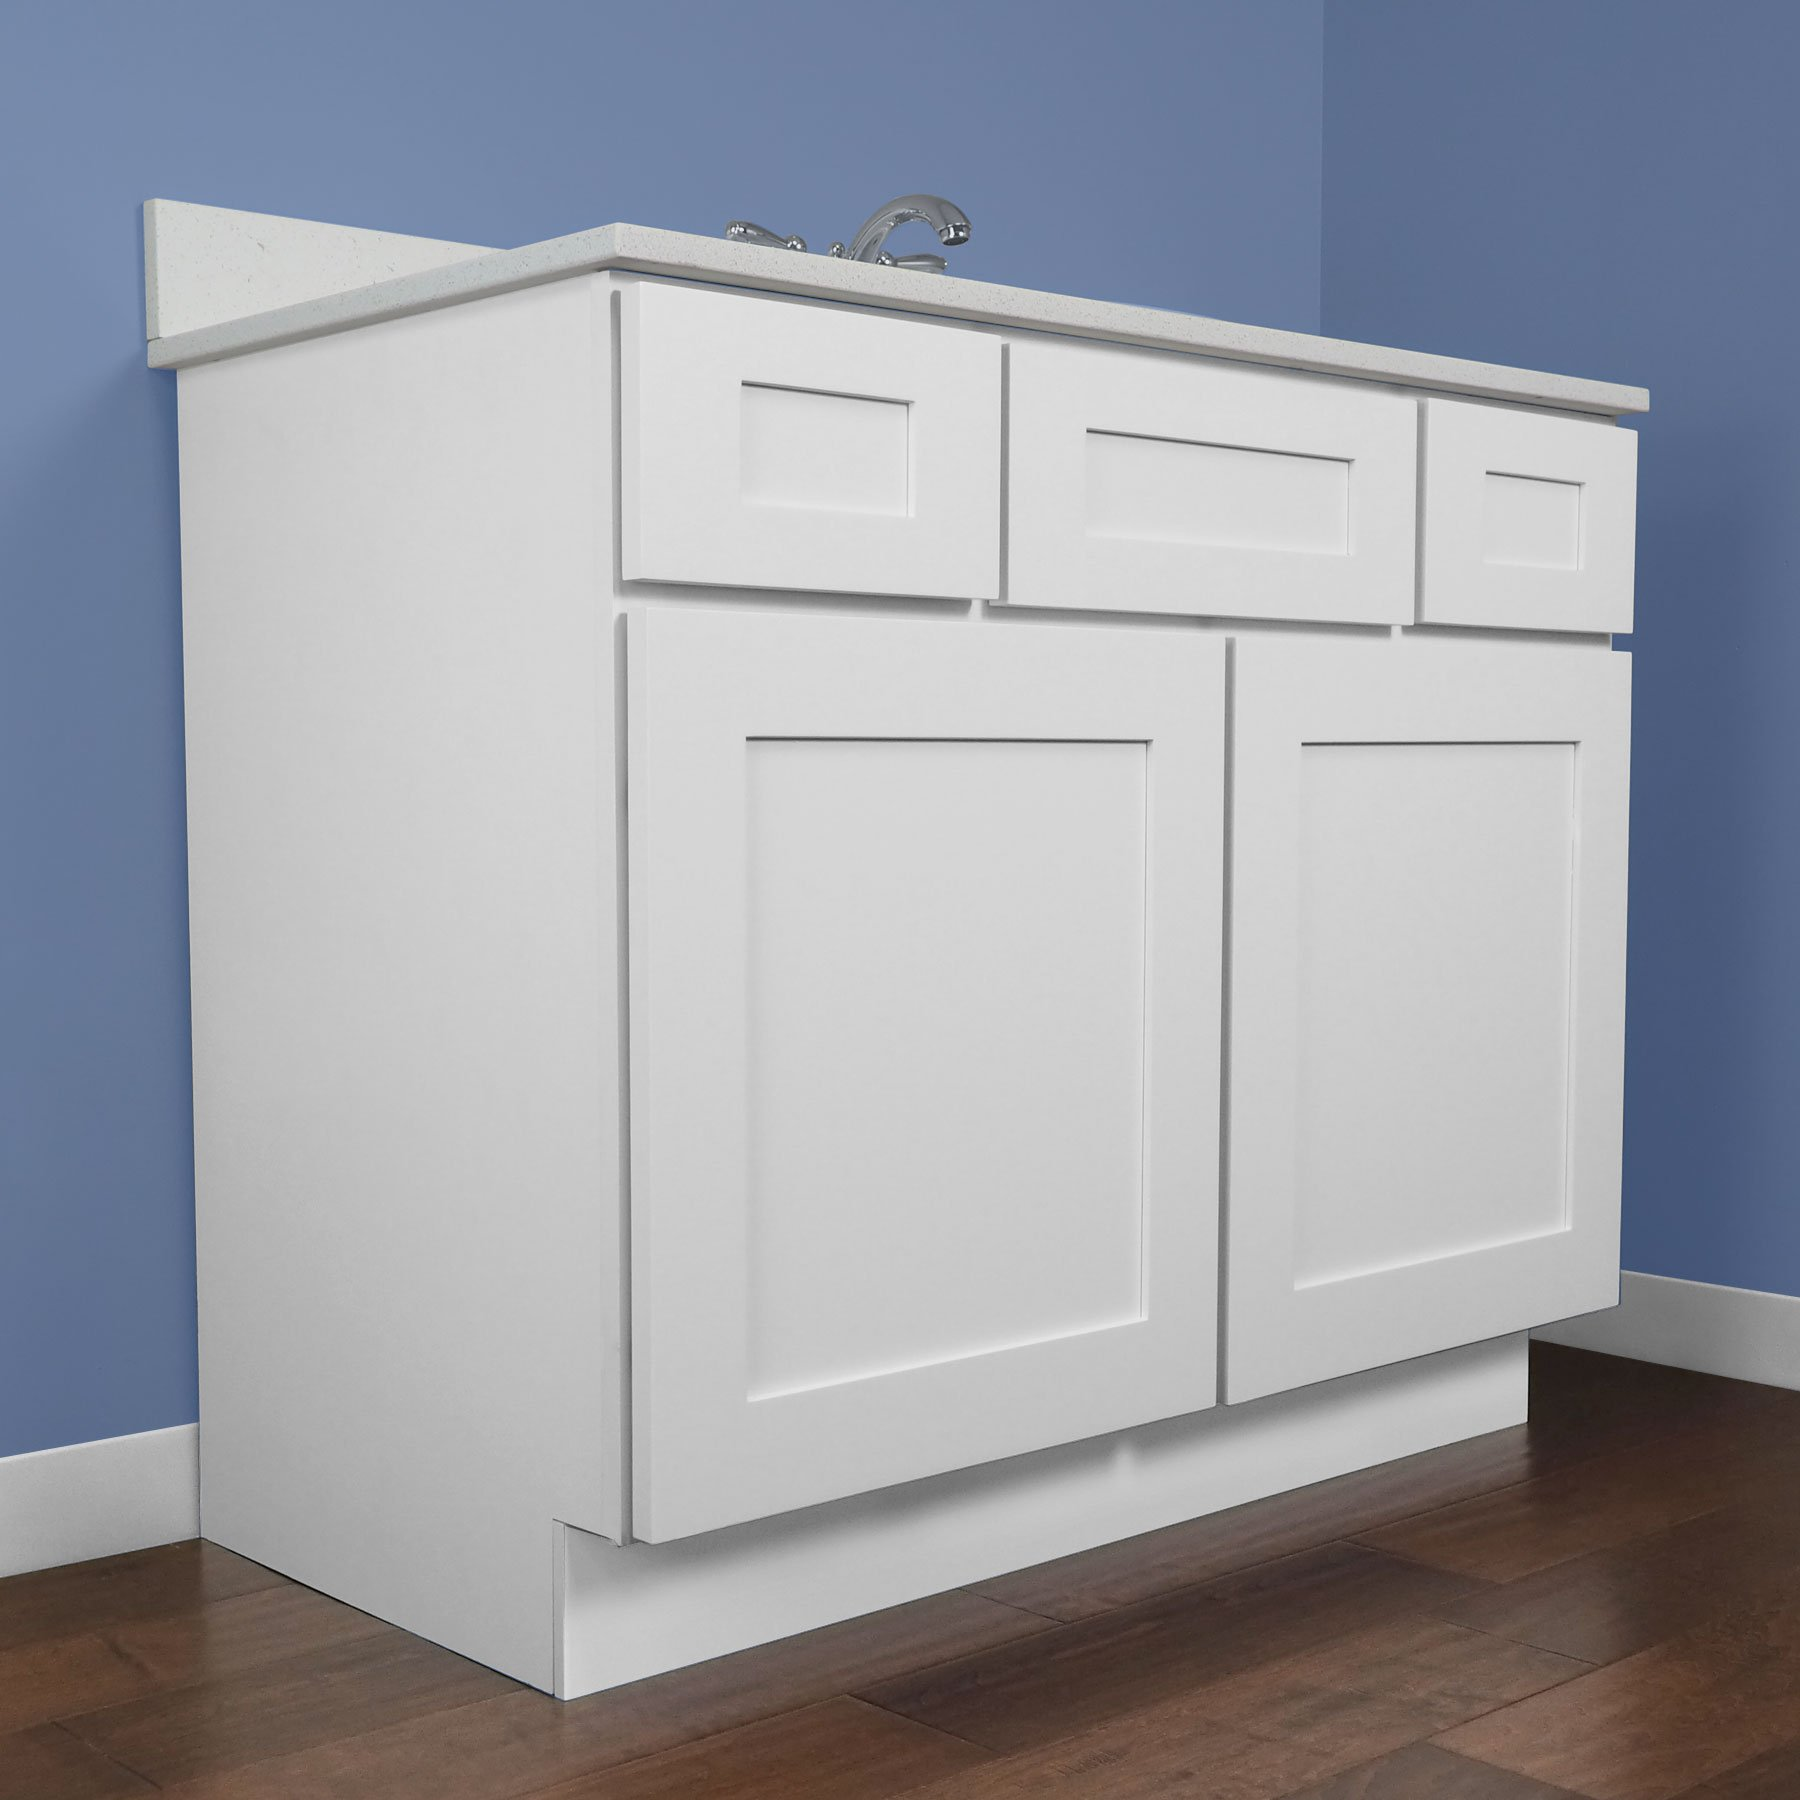 Everyday Cabinets Bathroom Vanity Single Sink Cabinet In Shaker White with Soft Close Drawers and Doors, 42'' L by Everyday Cabinets